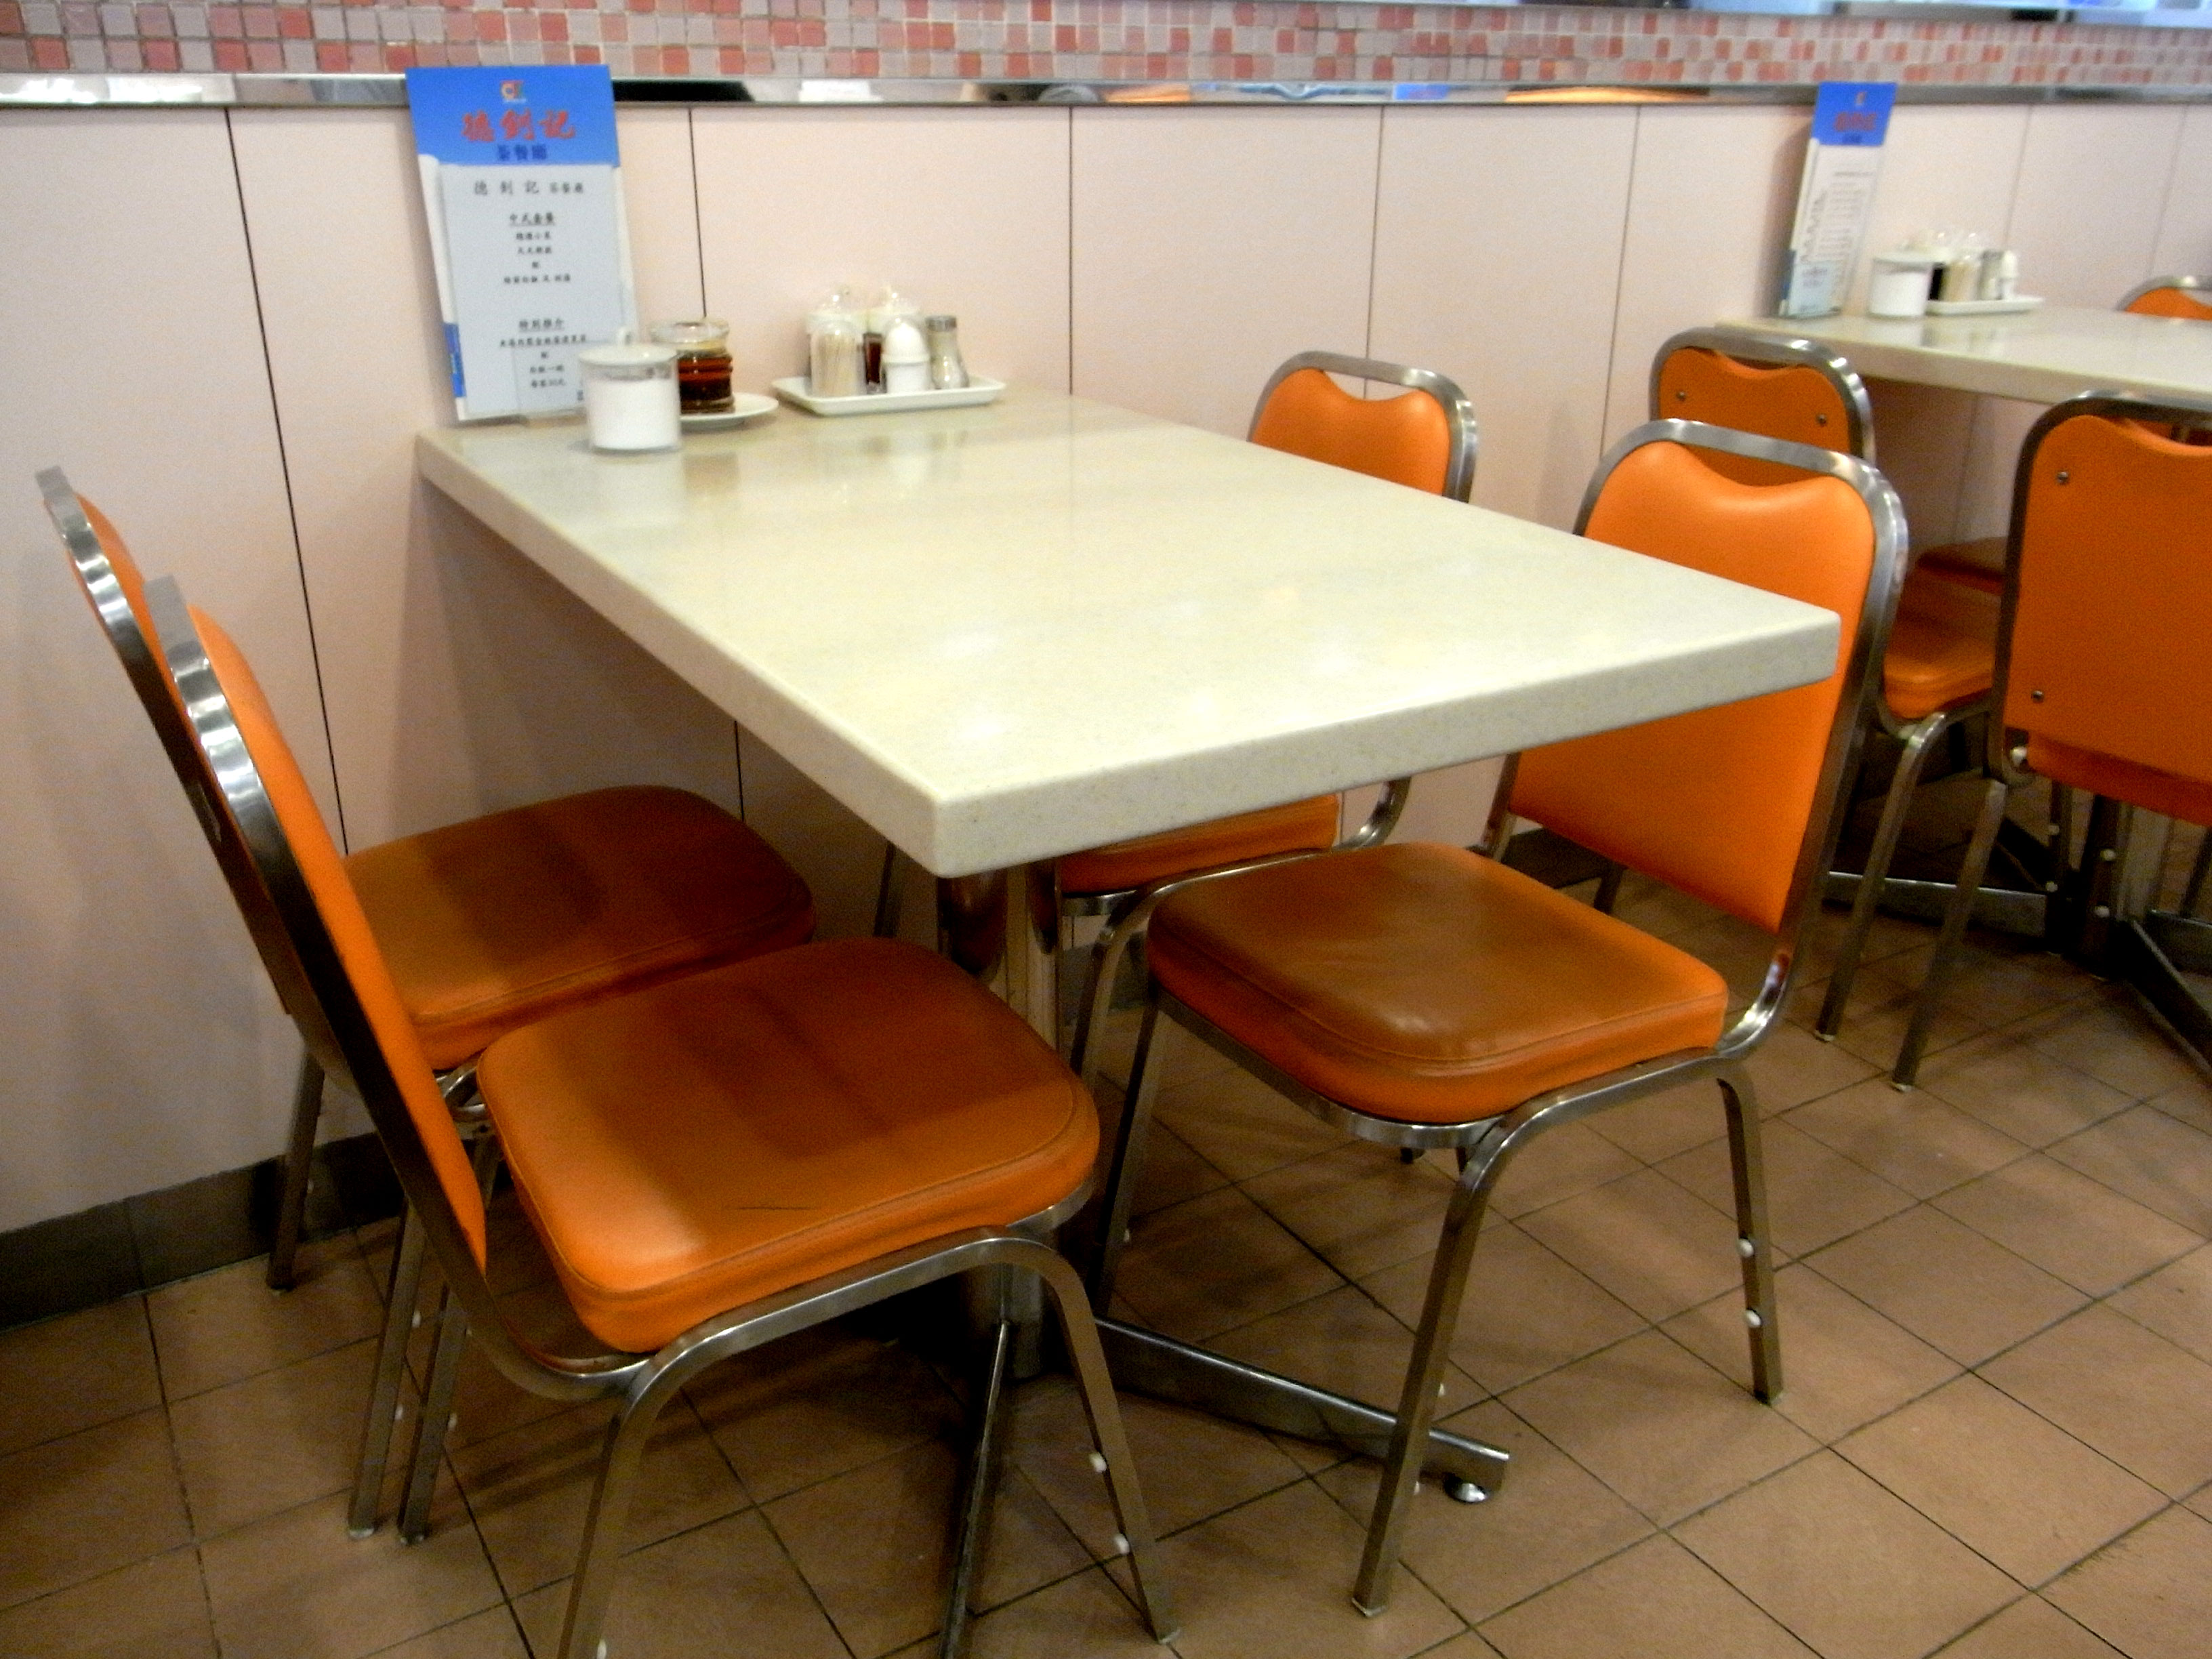 File:HK Sheung Wan 德釗記茶餐廳 Tak Chiu Kee Restaurant Table